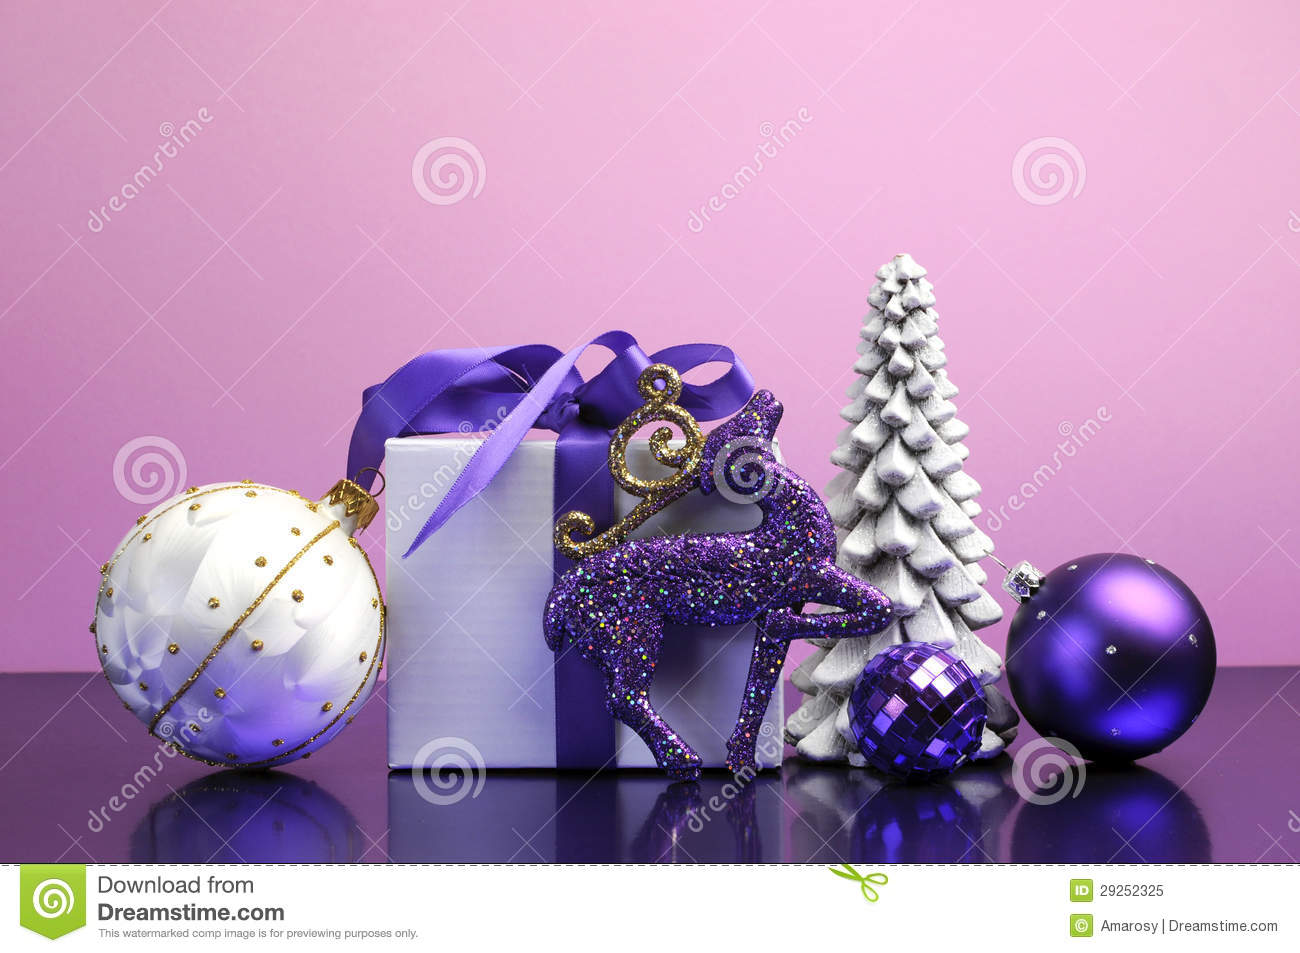 Purple Theme Christmas Gift And Bauble Decorations Stock Image Image Of Gift Object 29252325